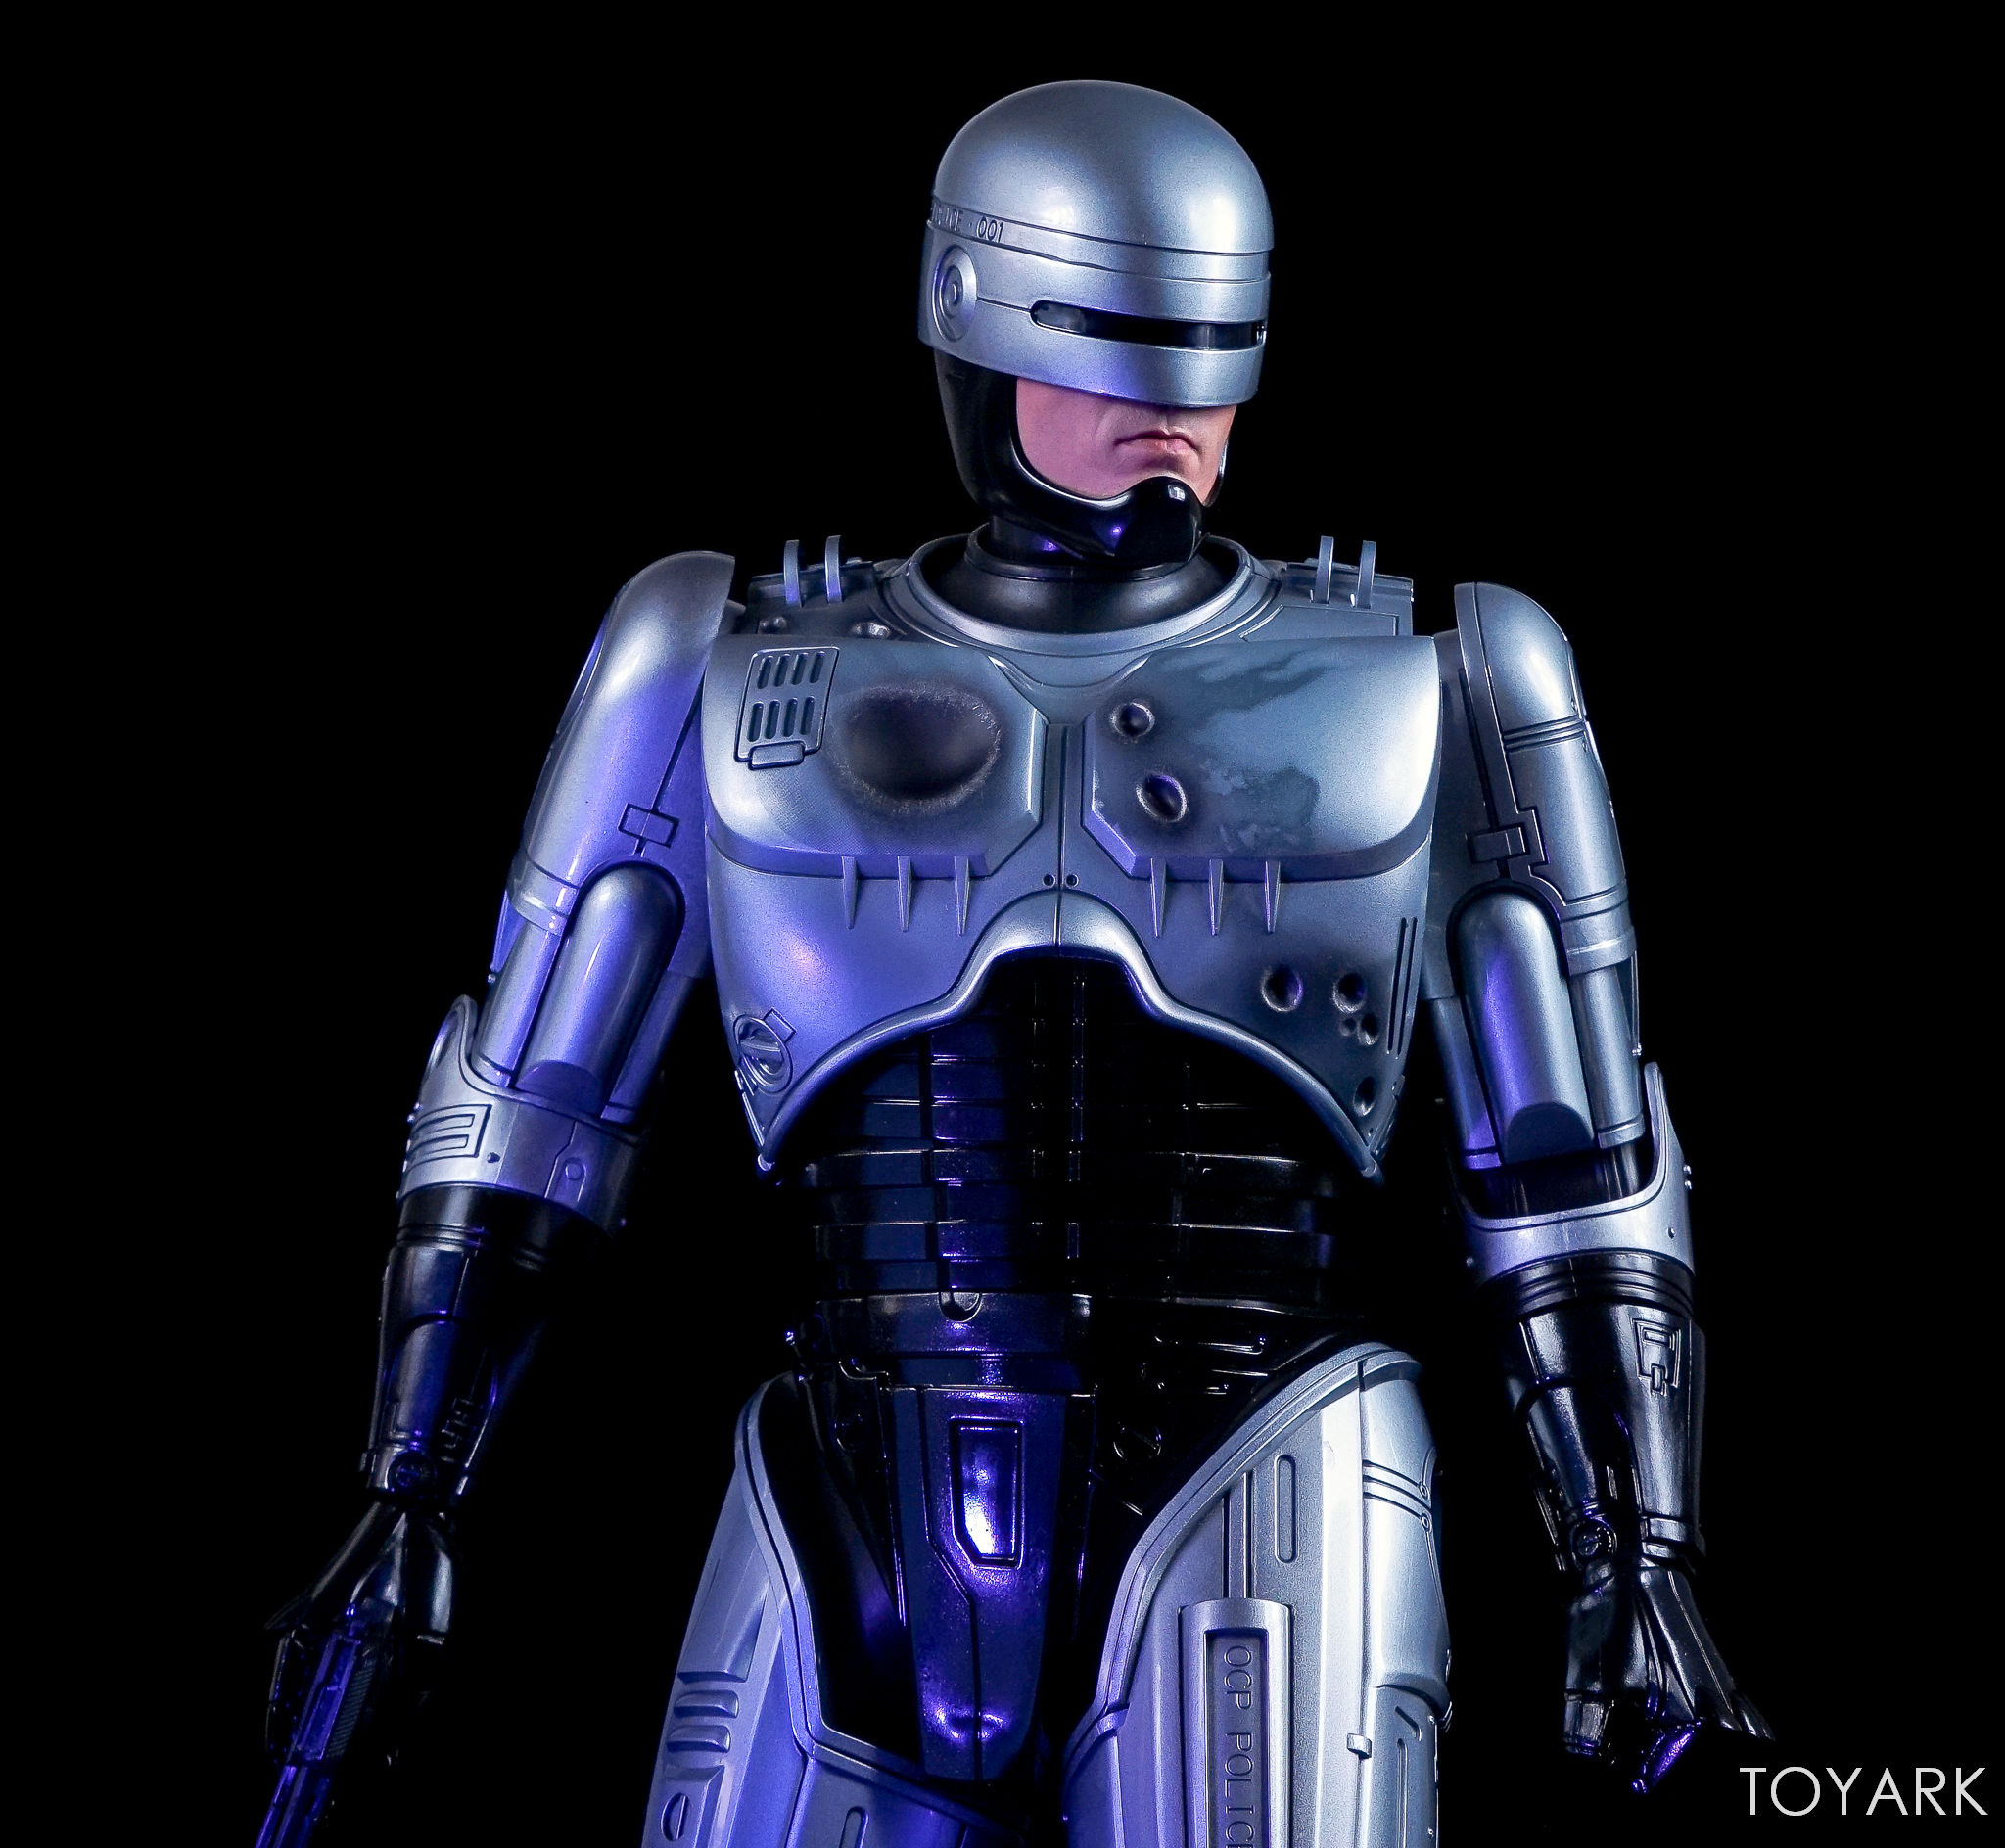 http://news.toyark.com/wp-content/uploads/sites/4/2017/07/Enterbay-Robocop-3-HD-Masterpiece-048.jpg